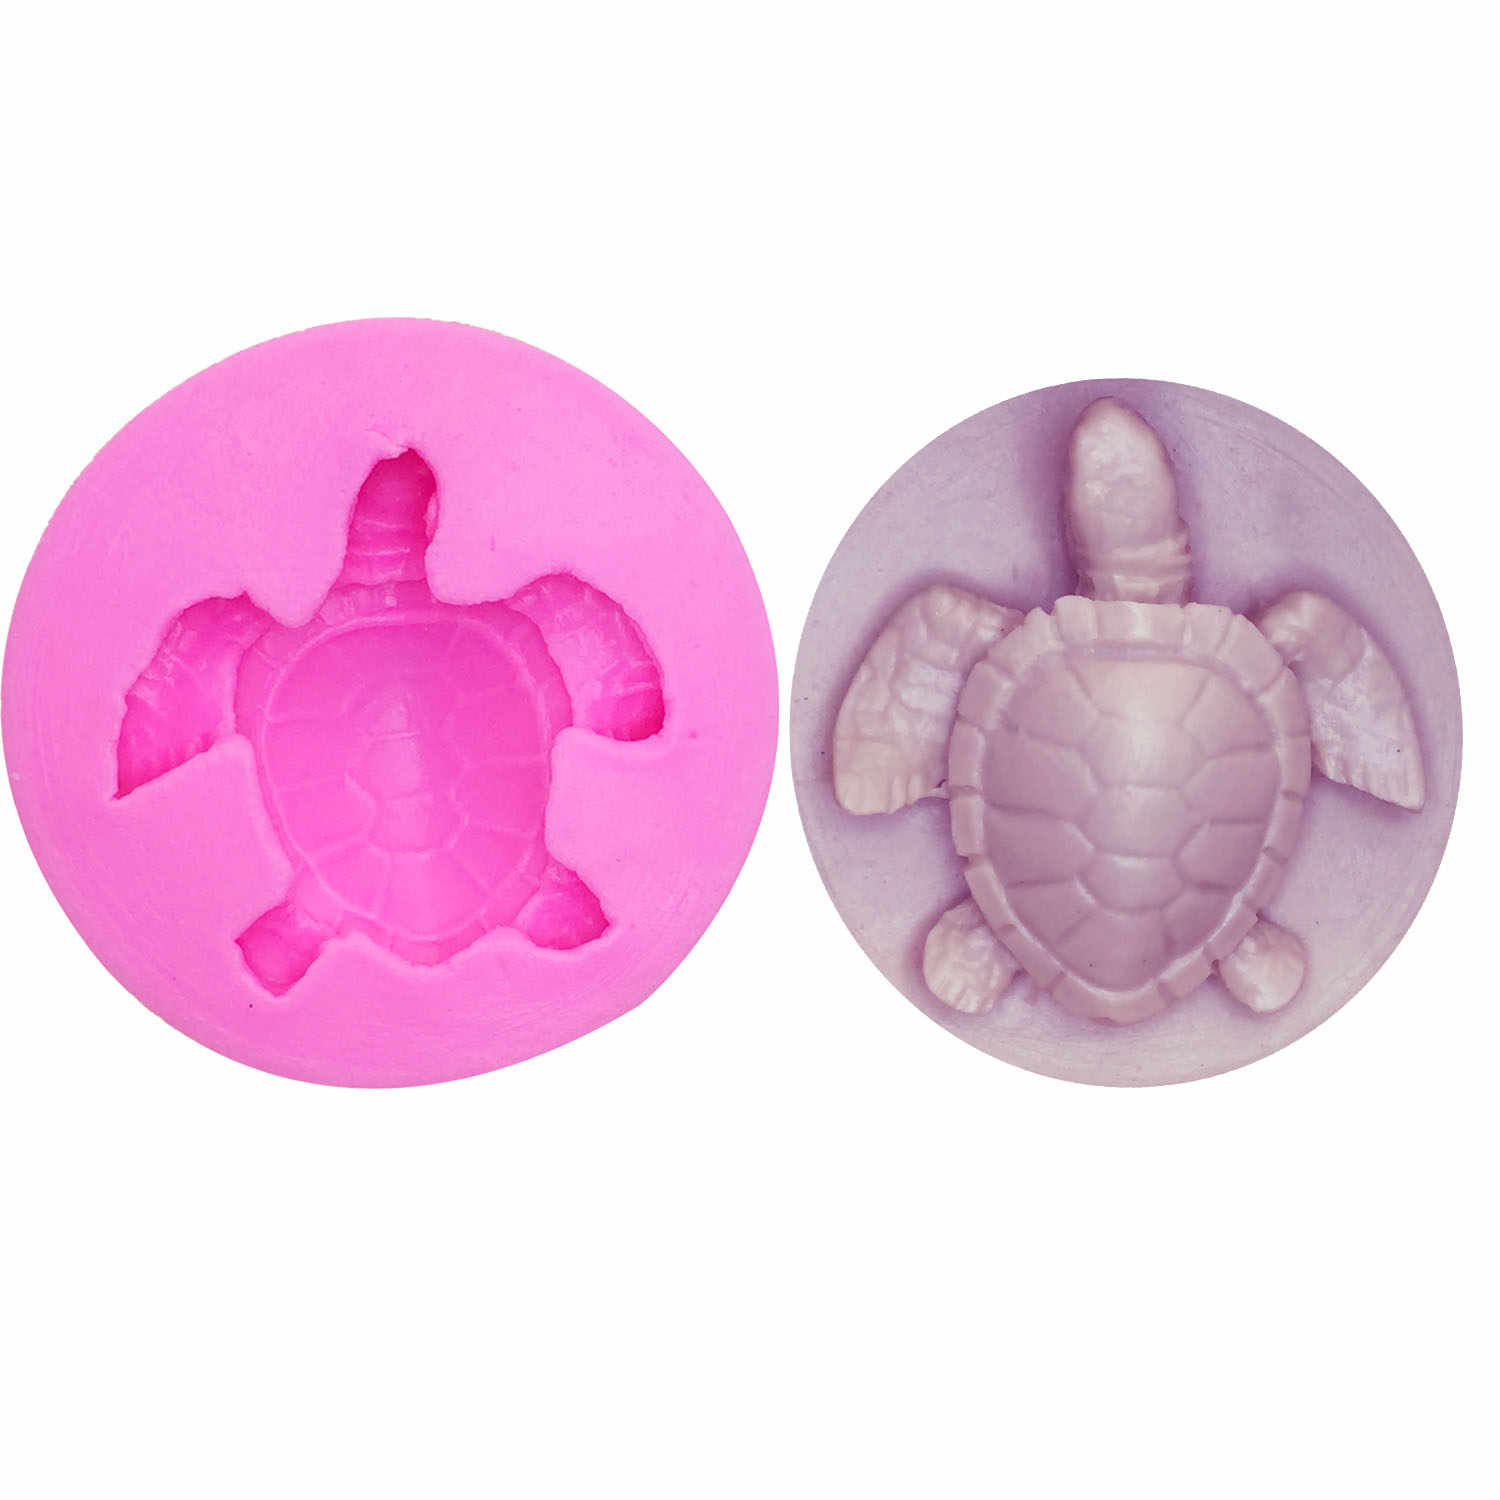 M1024 Sea turtle Shape Silicone Mold Cake Fondant Paste DIY Tortoise Silicone Decorating Mould Chocolate Gum Paste Soap molds